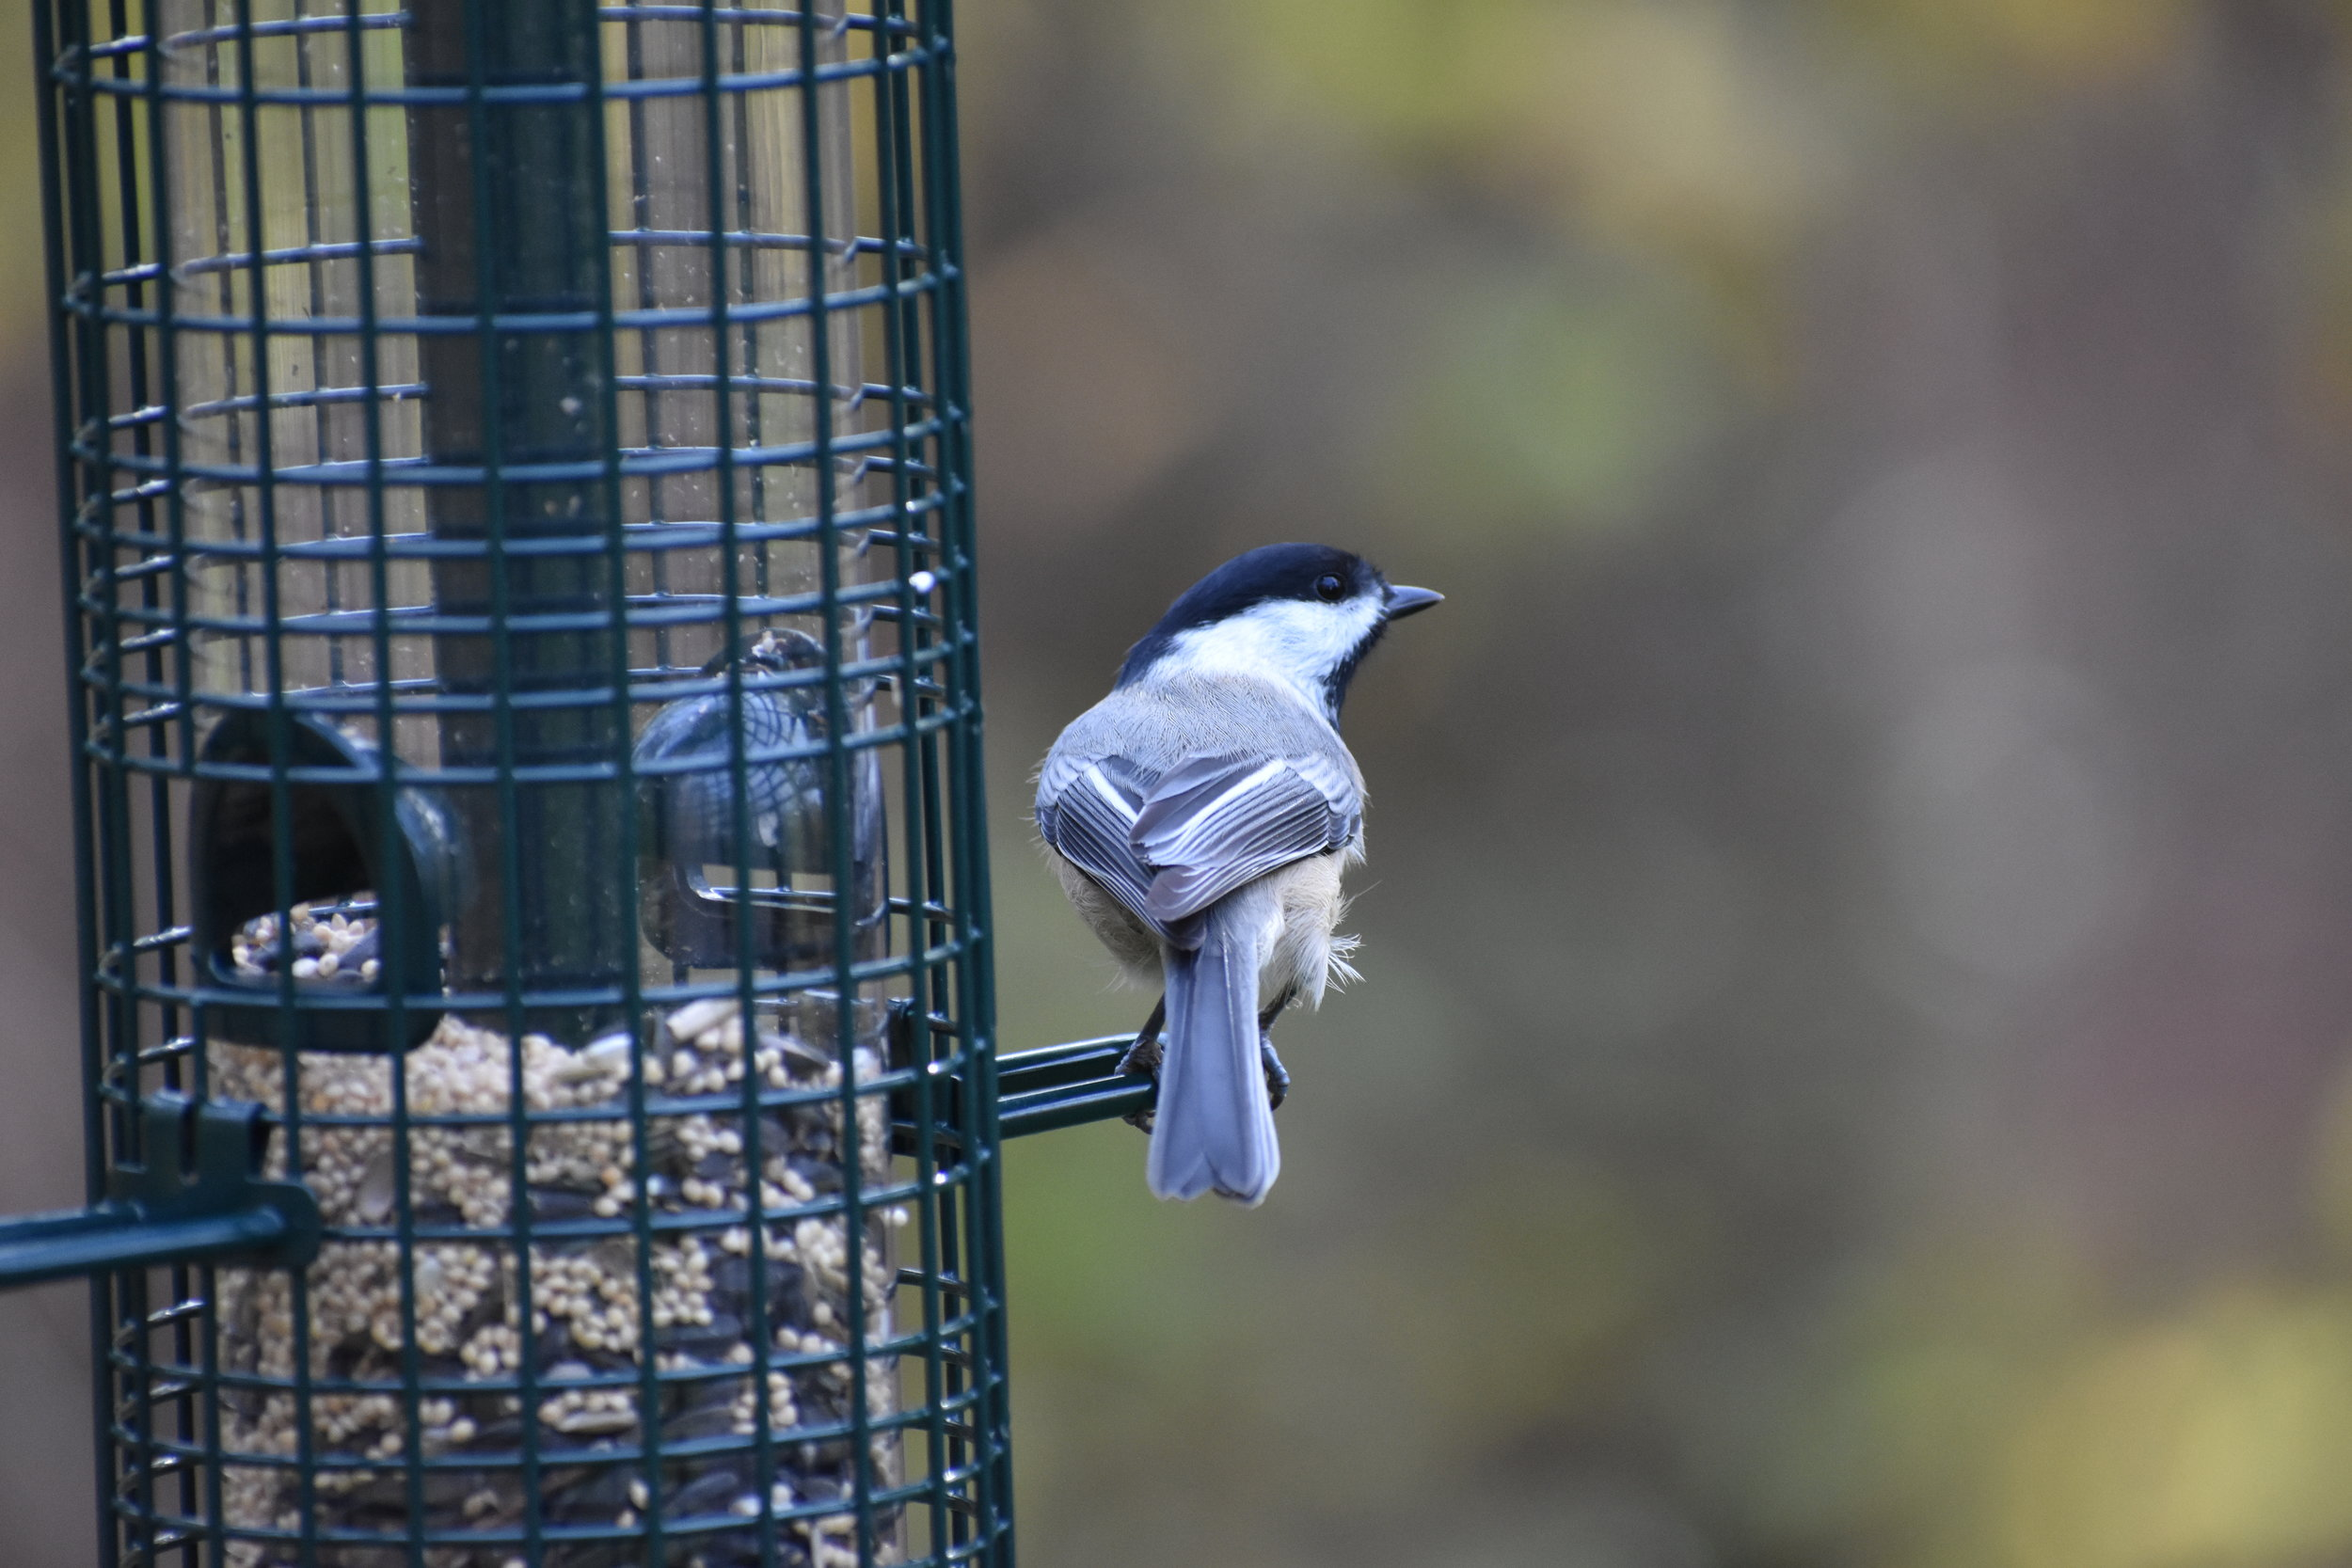 Black-Capped Chickadee & Hanging Tube Feeder